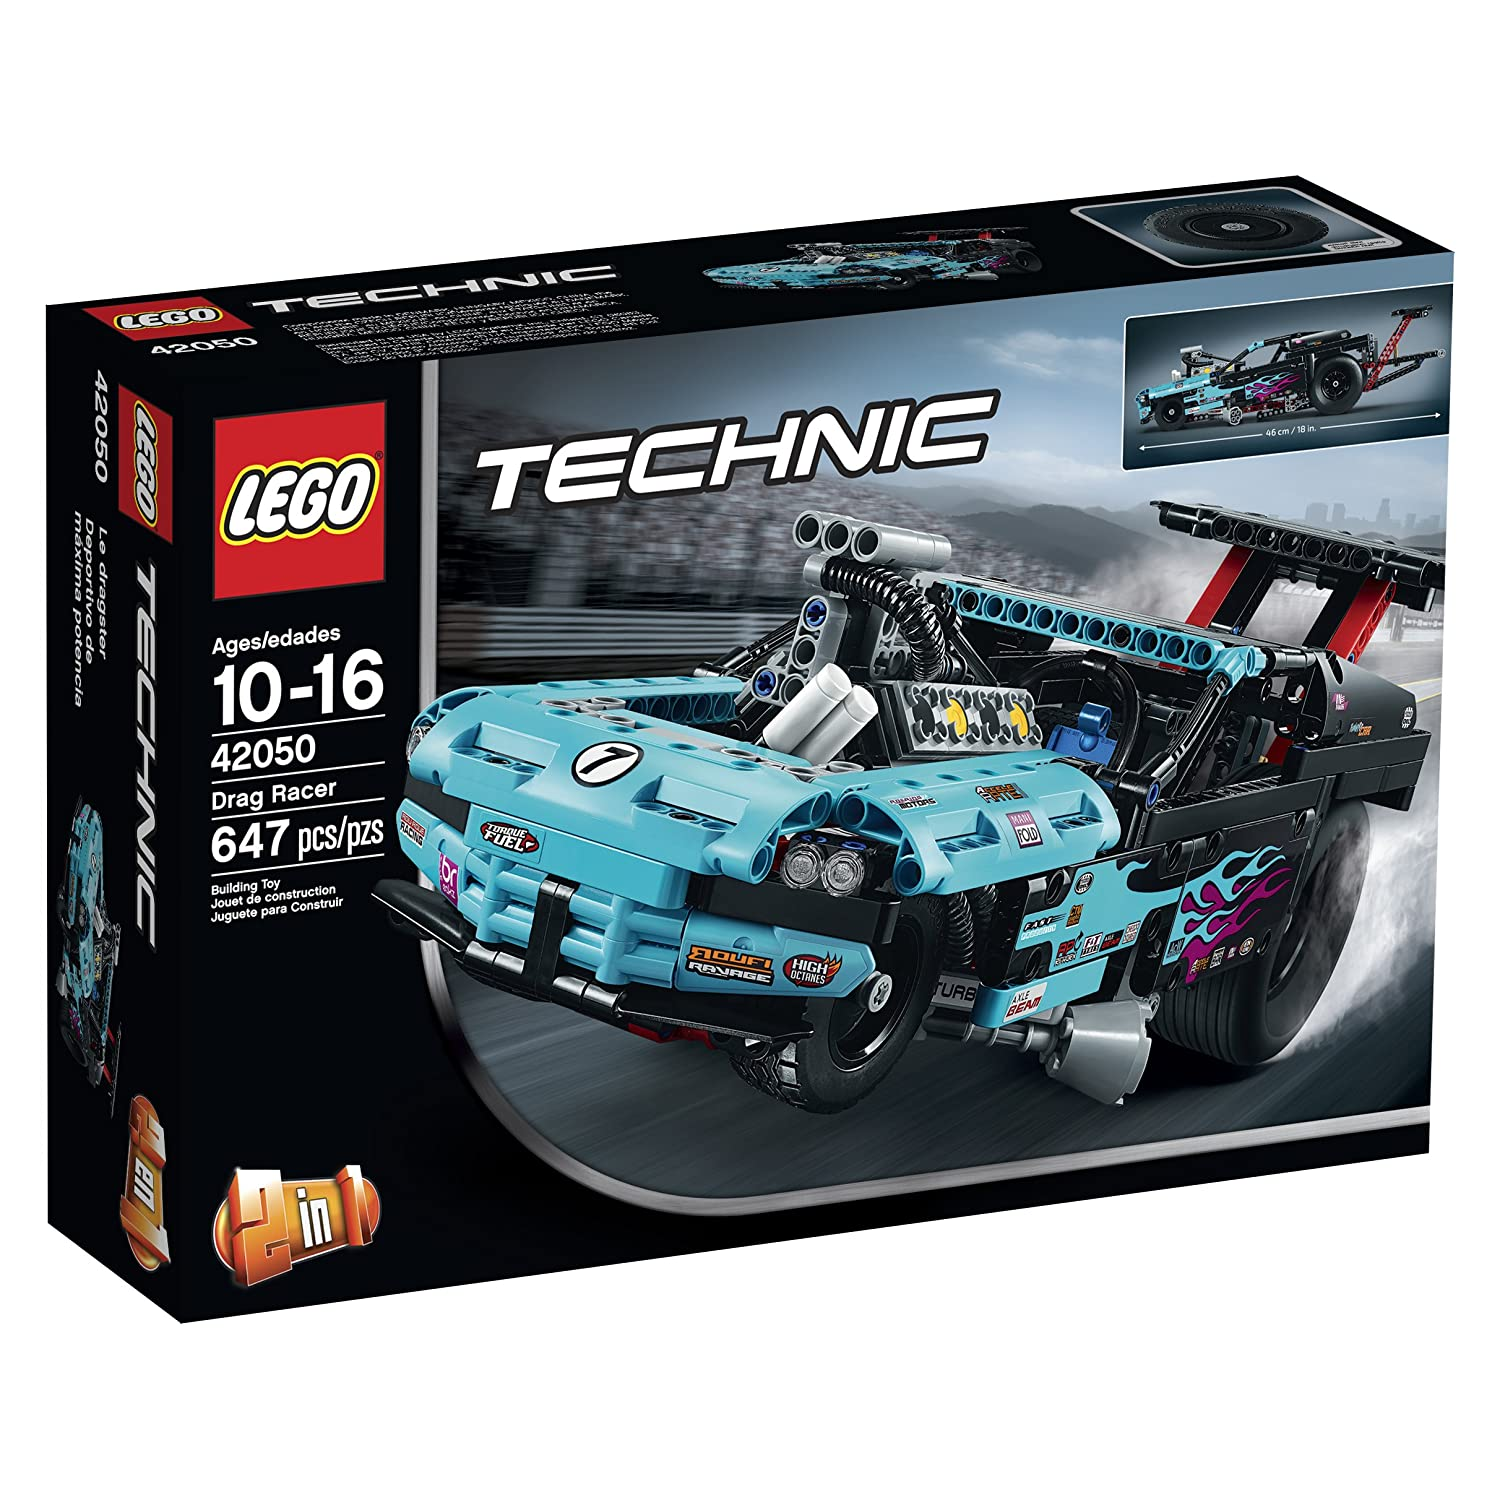 LEGO Technic Drag Racer (42050) Kit Speed Build Video